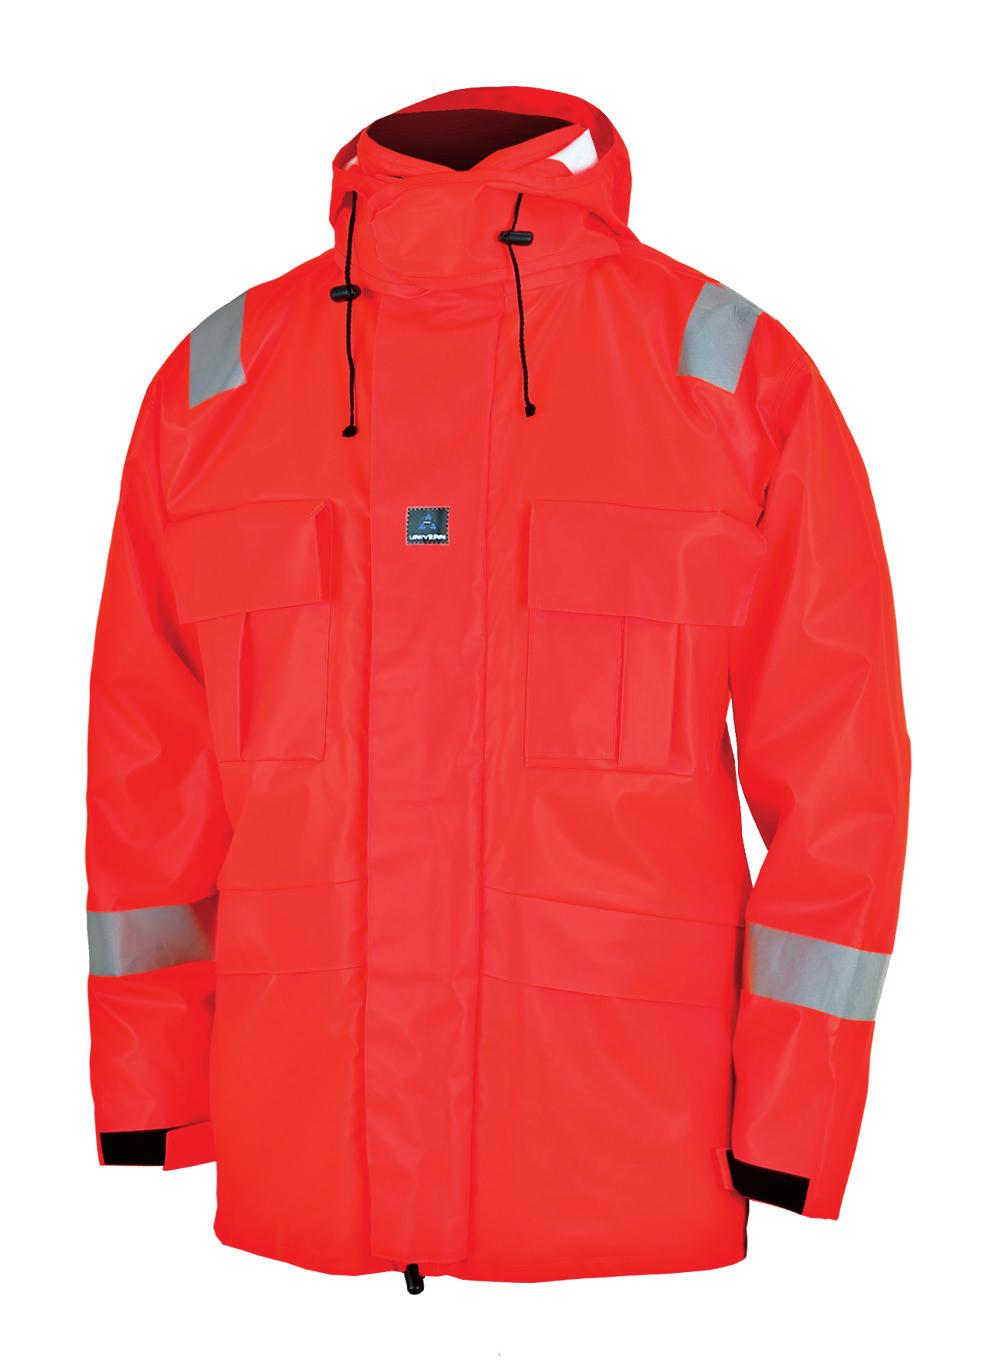 The waterproof clothing in this series is produced in a soft knitted polyester PU.